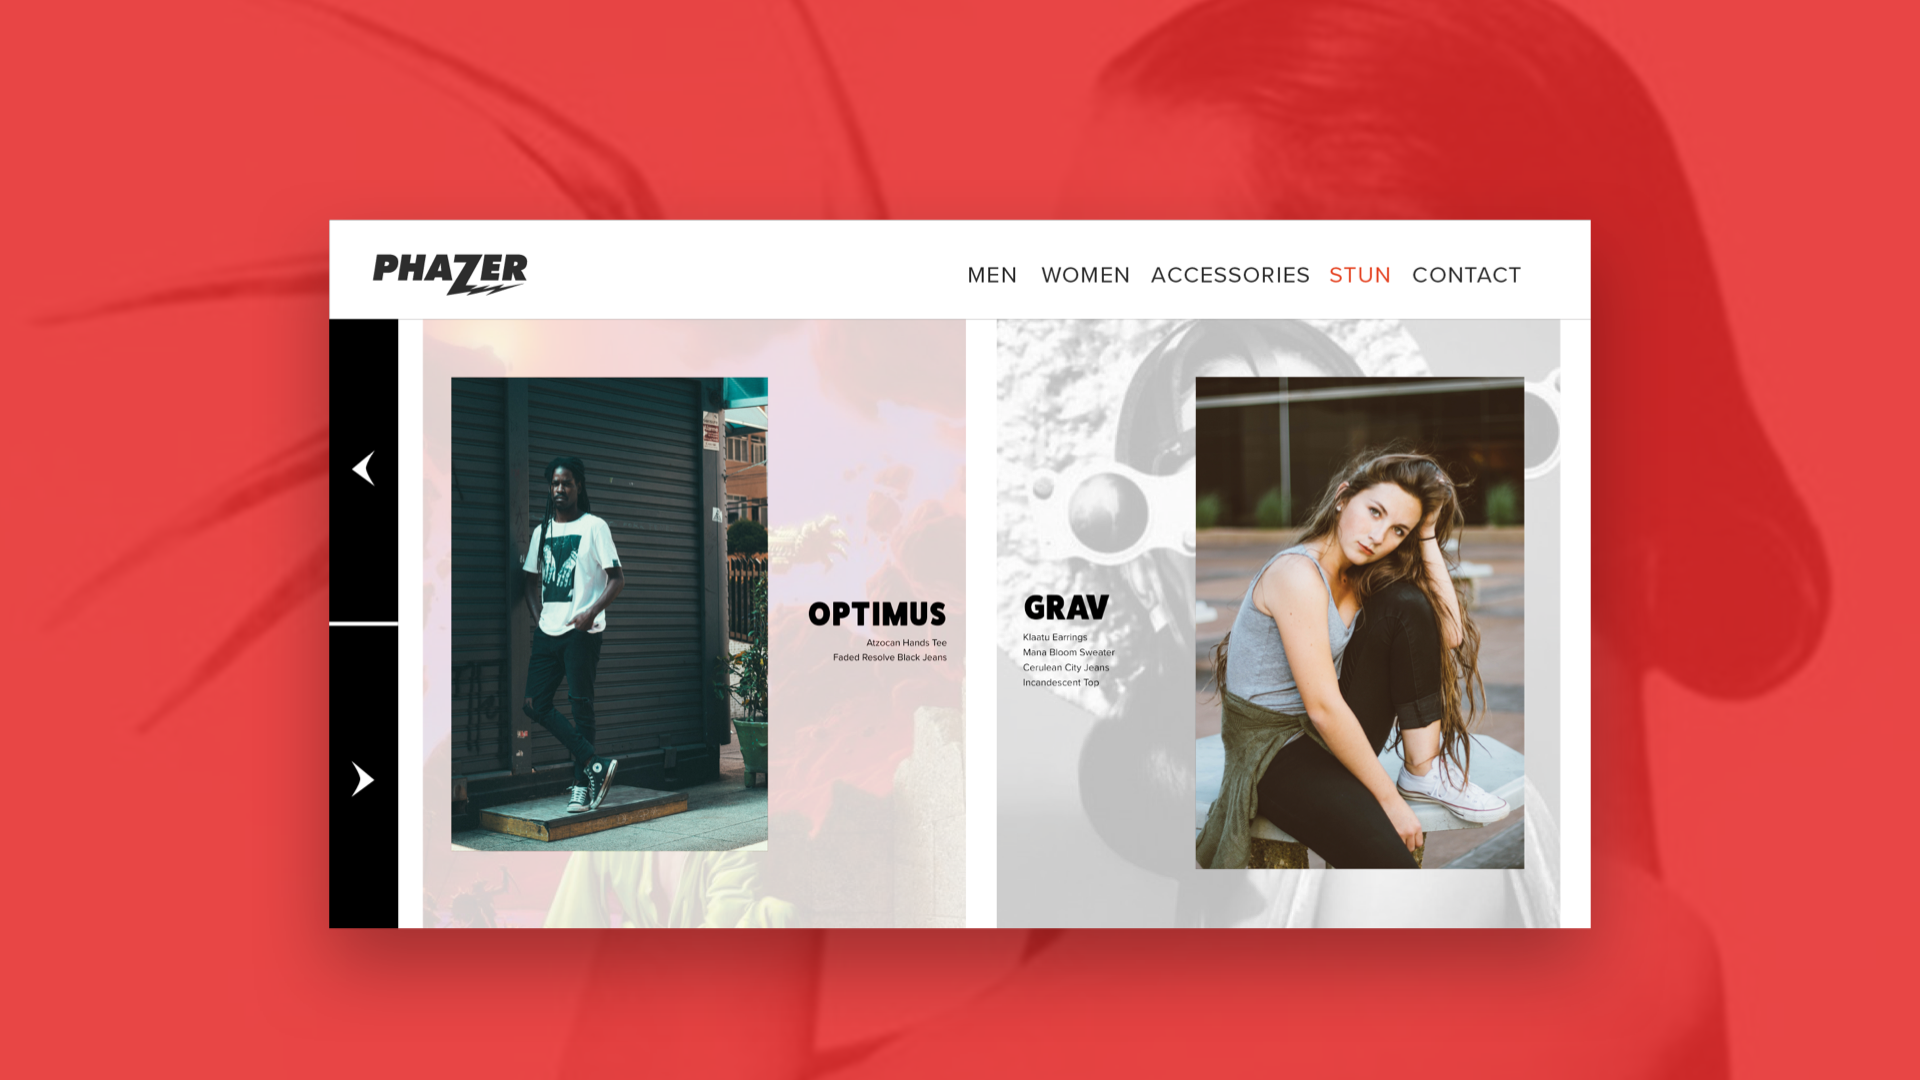 Phazer Stun, an online magazine that functions as a stylist and a lookbook.